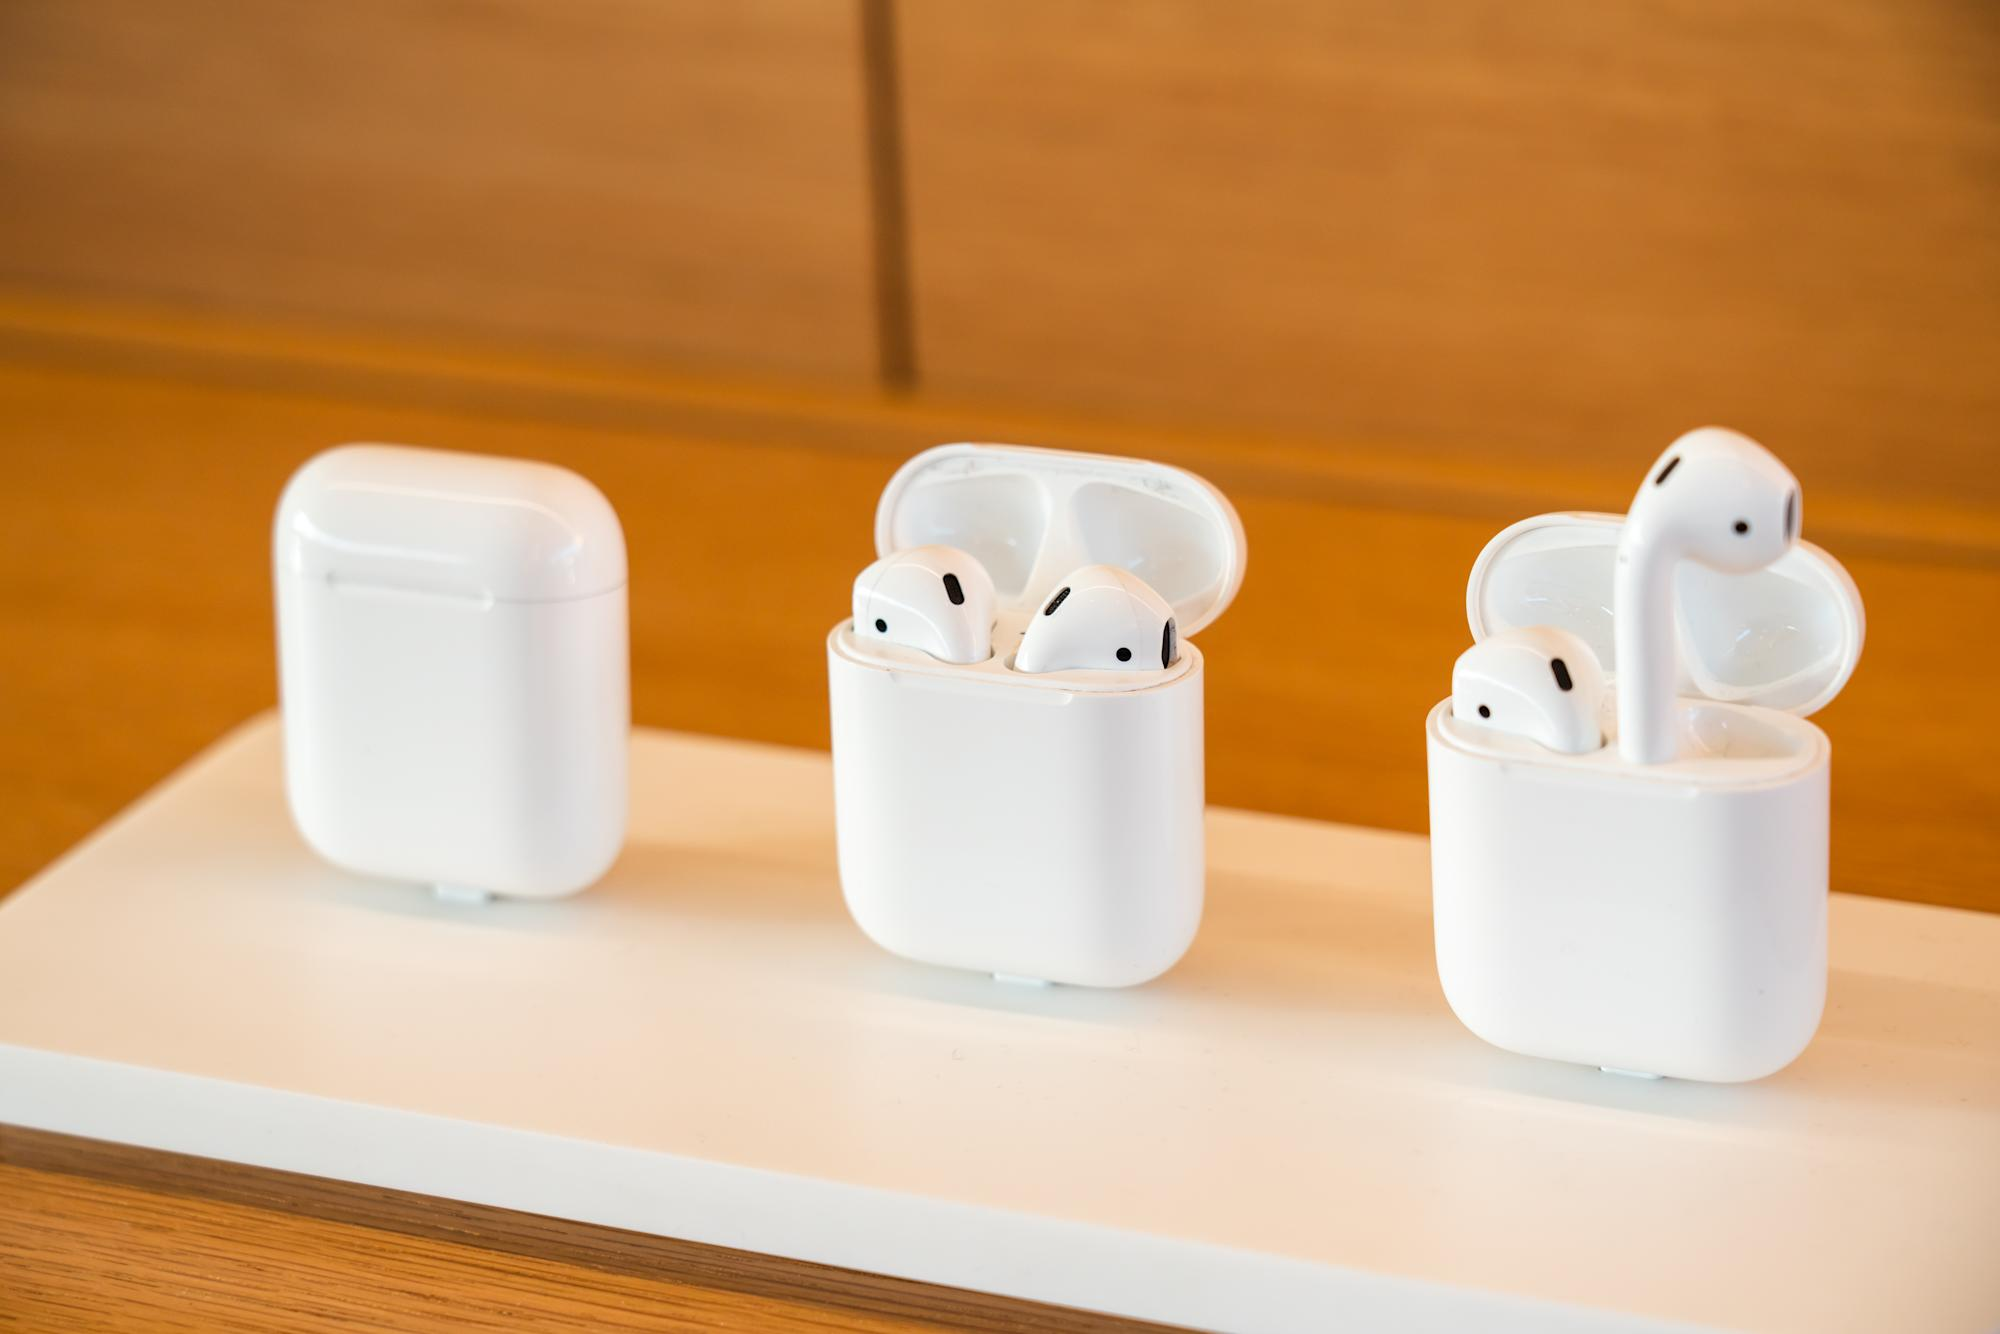 What to do if your Apple AirPods won't charge anymore: Tech Support